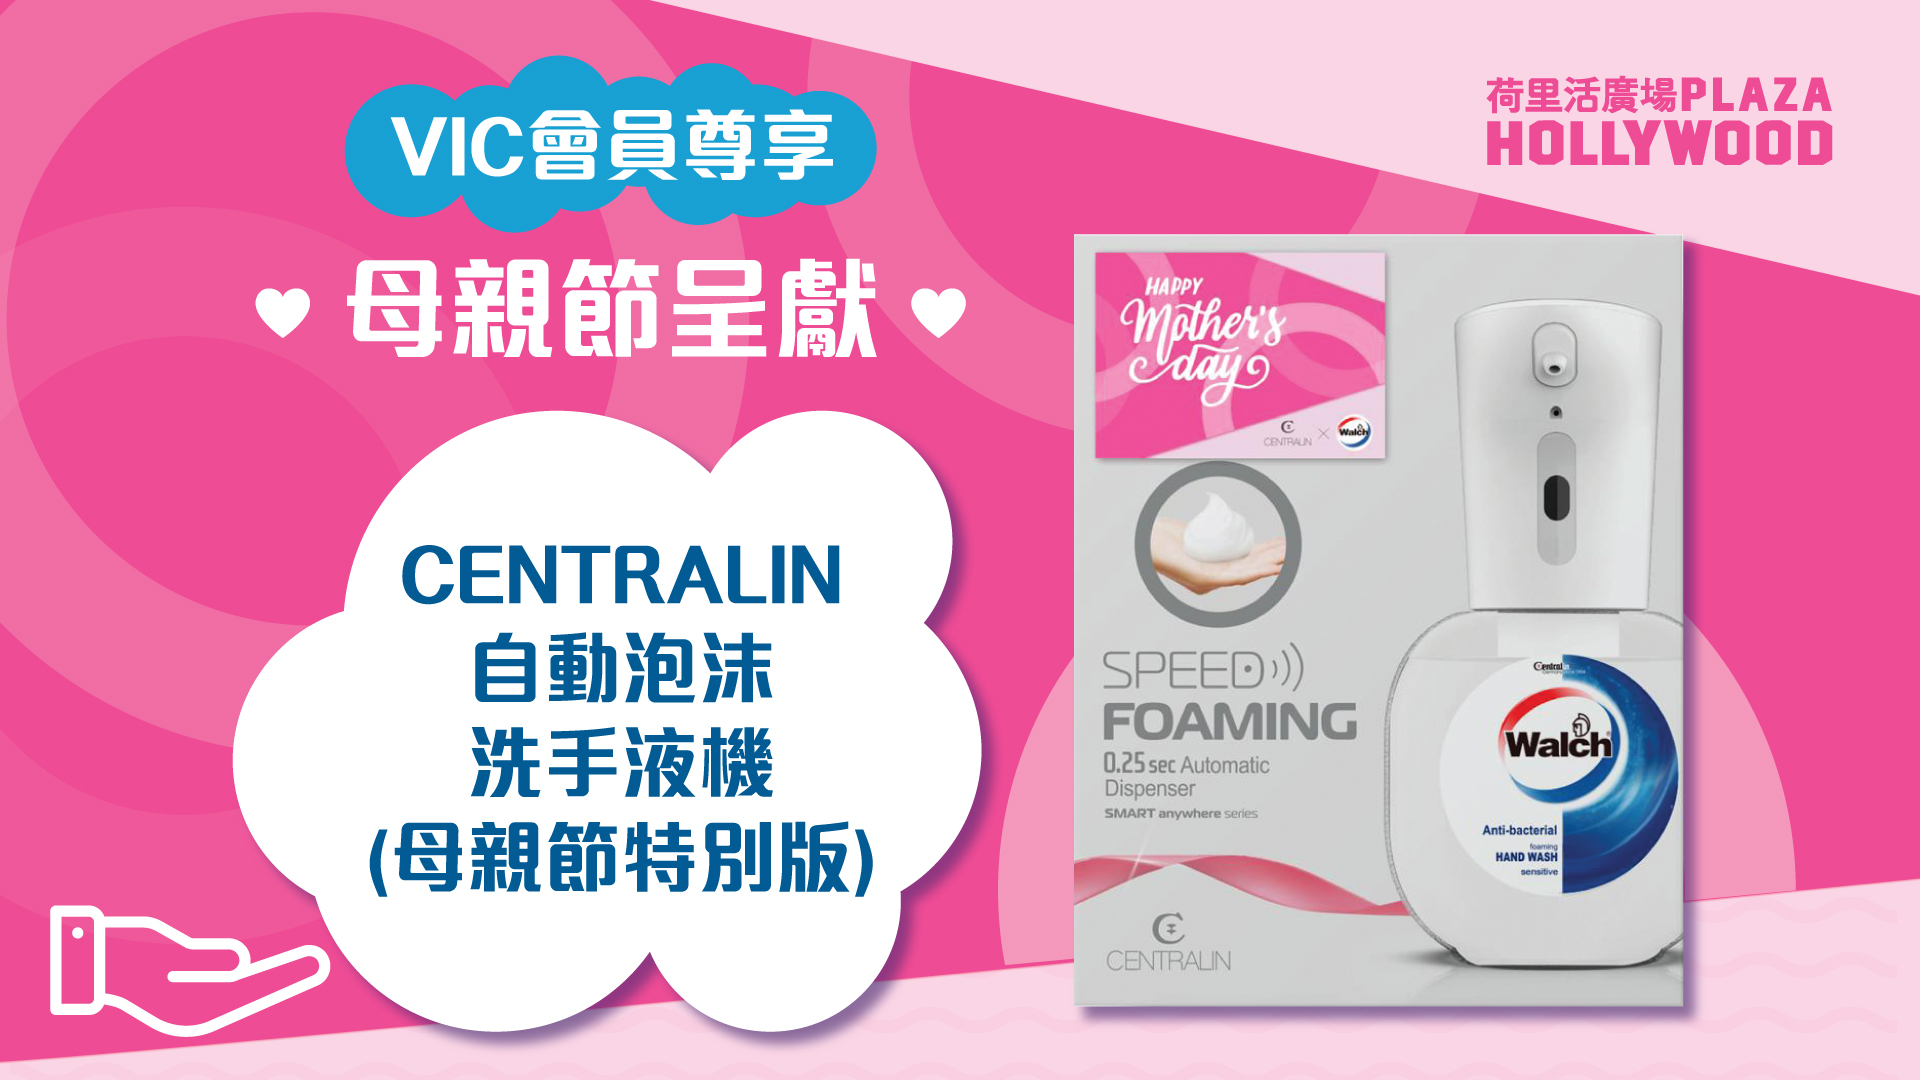 VIC Redemption - CENTRALIN Foaming Machine